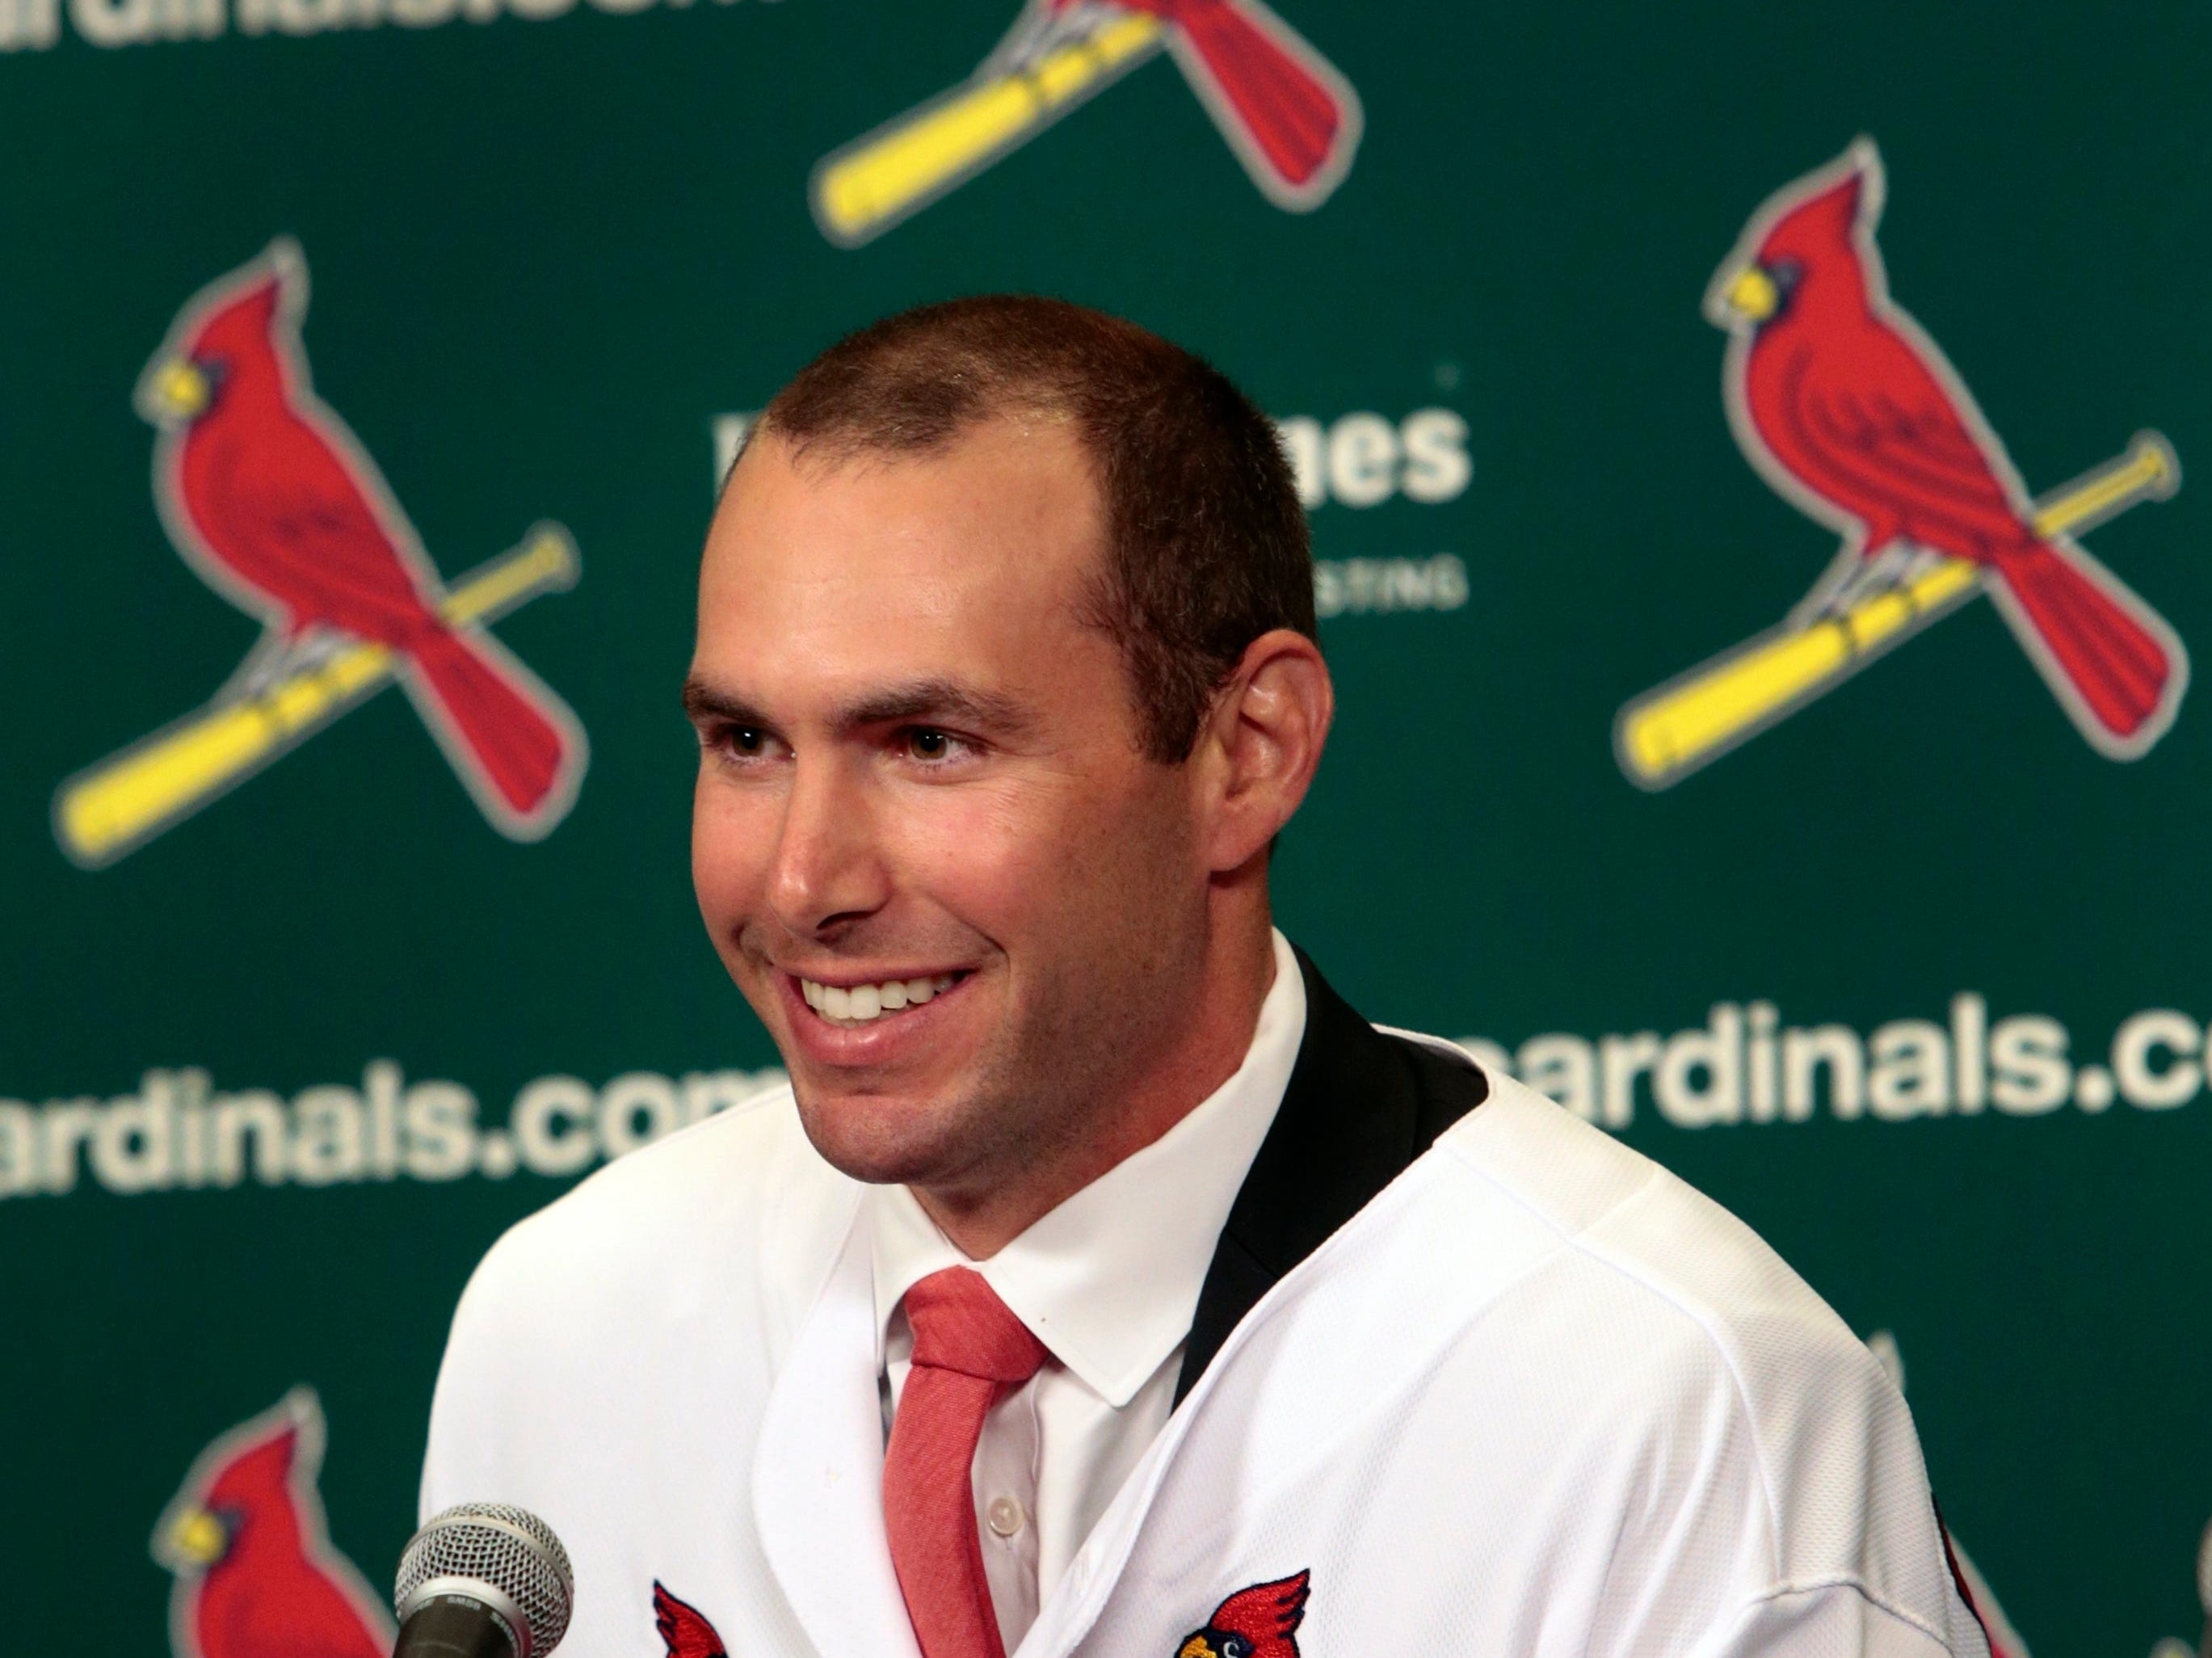 17. Paul Goldschmidt, St. Louis Cardinals first baseman.